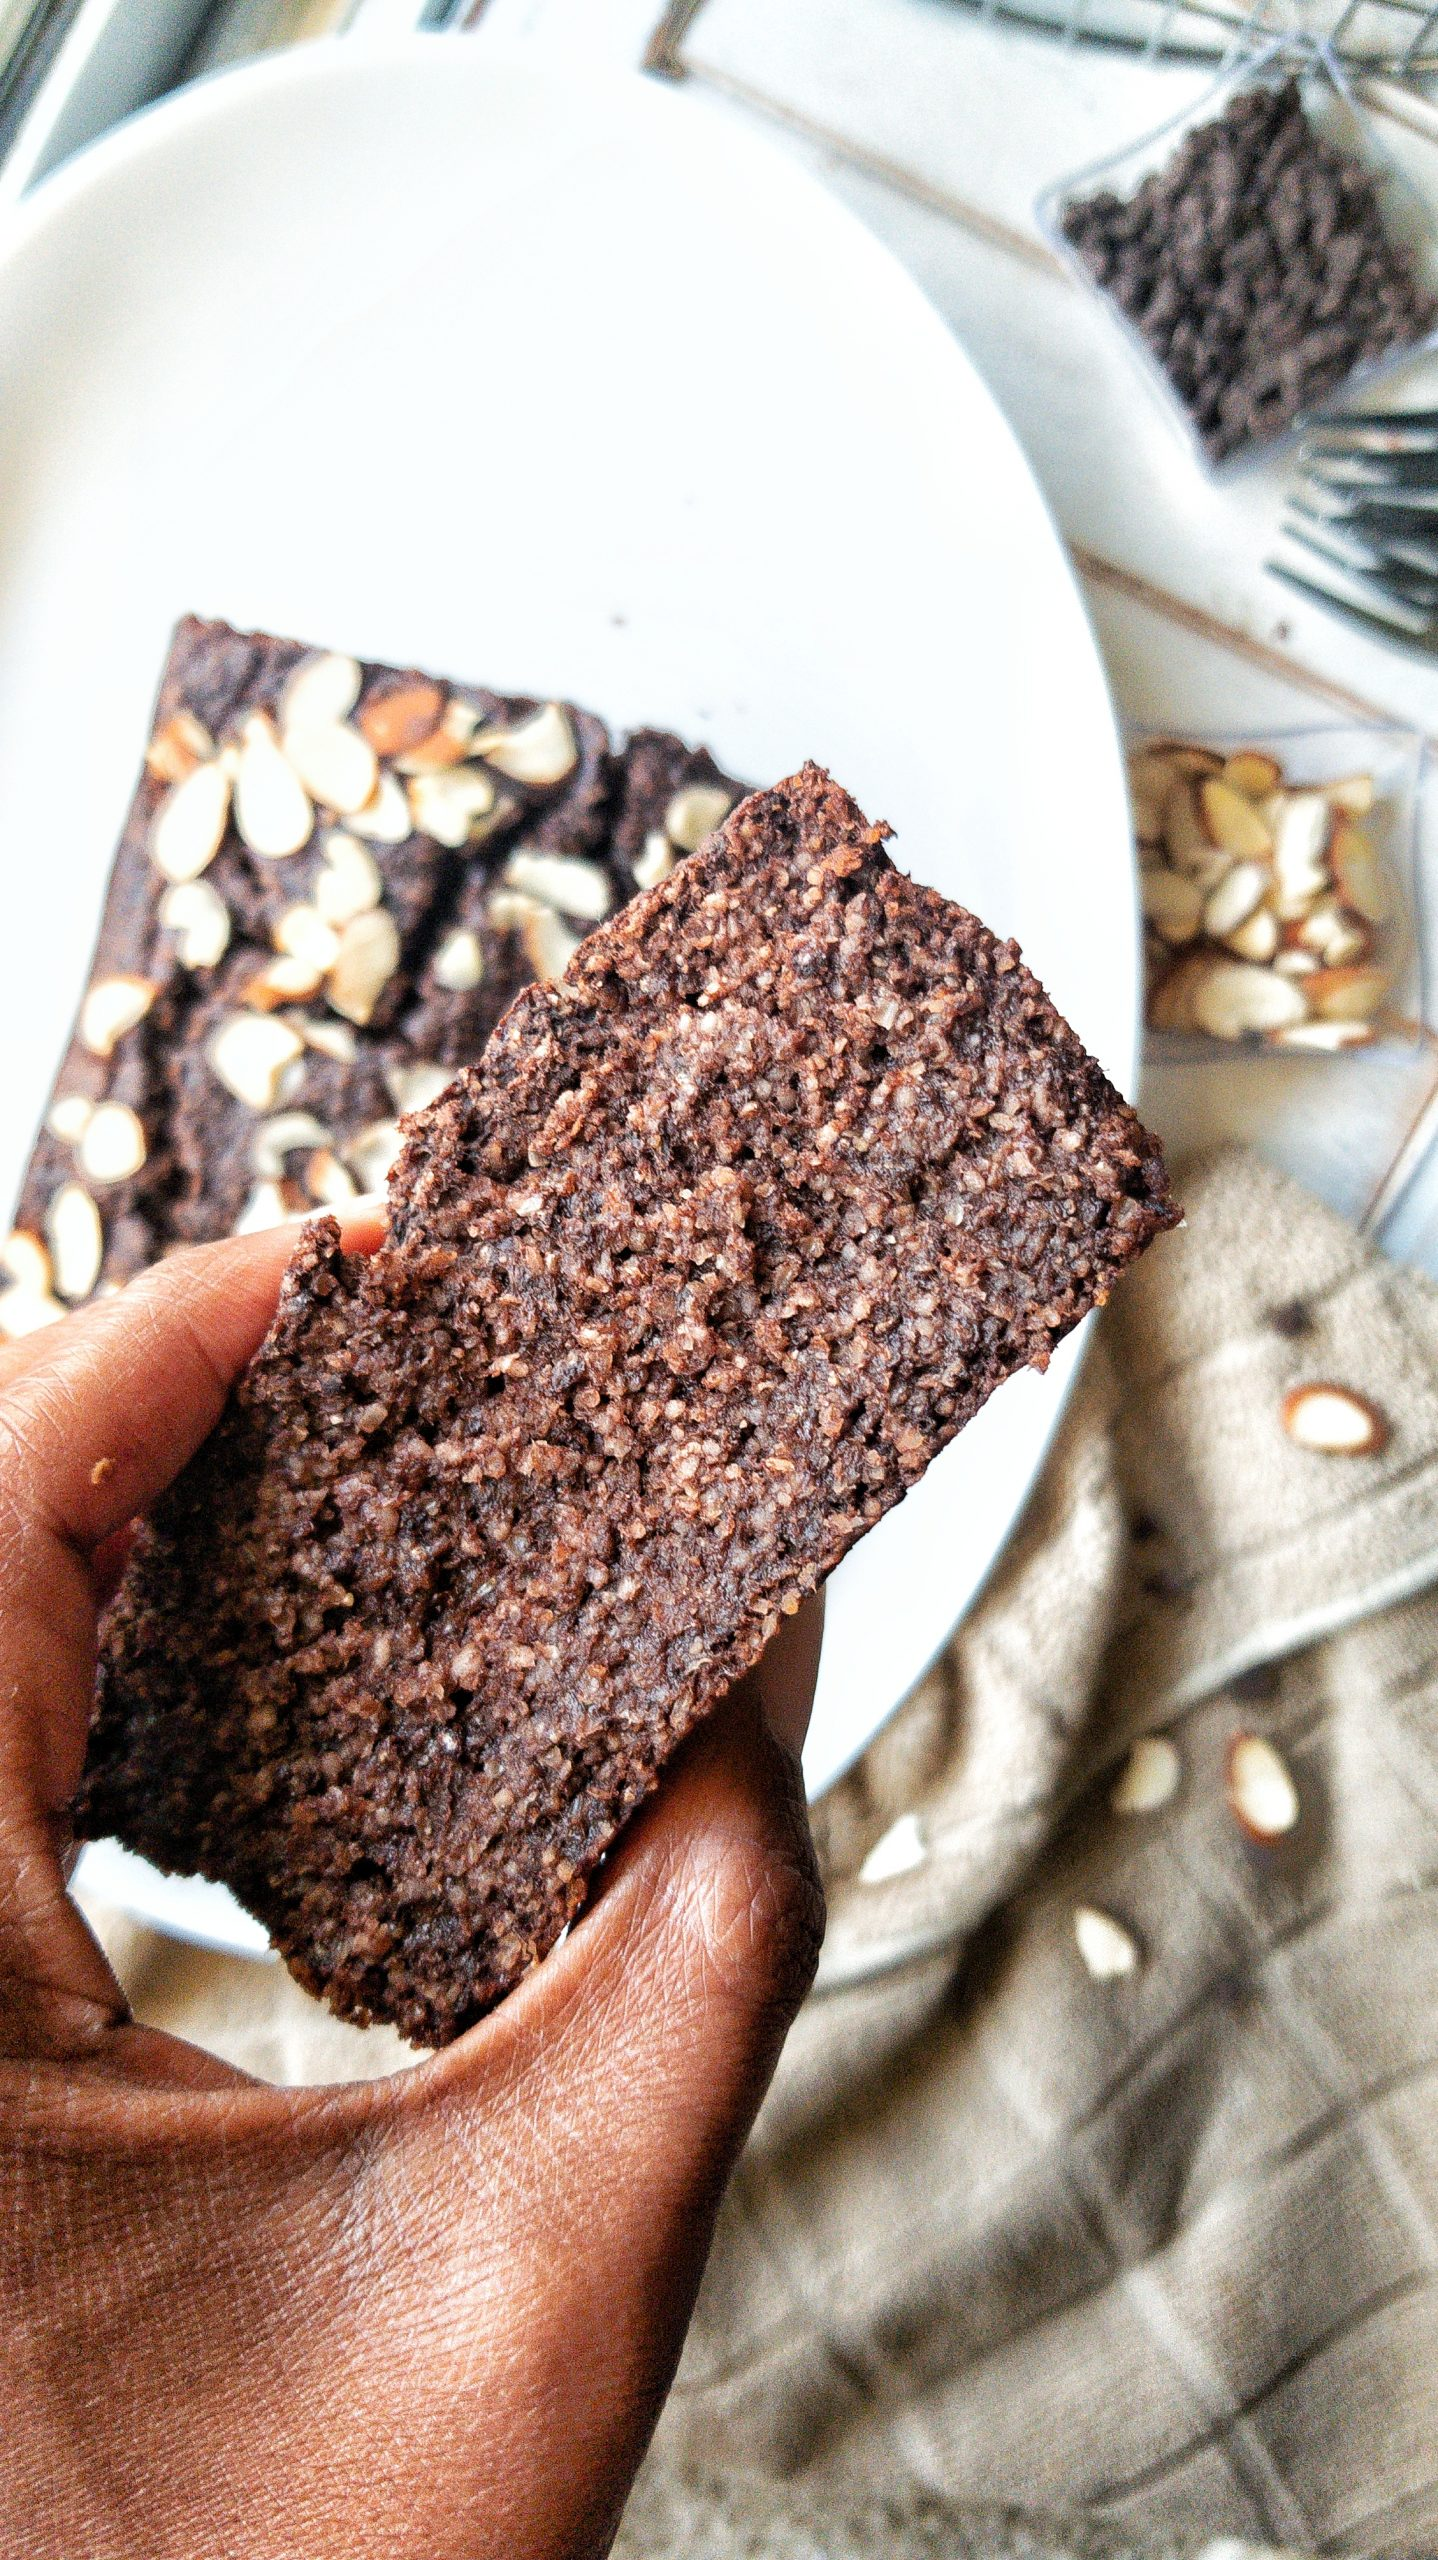 A close-up slice of plant-based, Gluten-Free Double Chocolate Banana Bread topped with almonds.